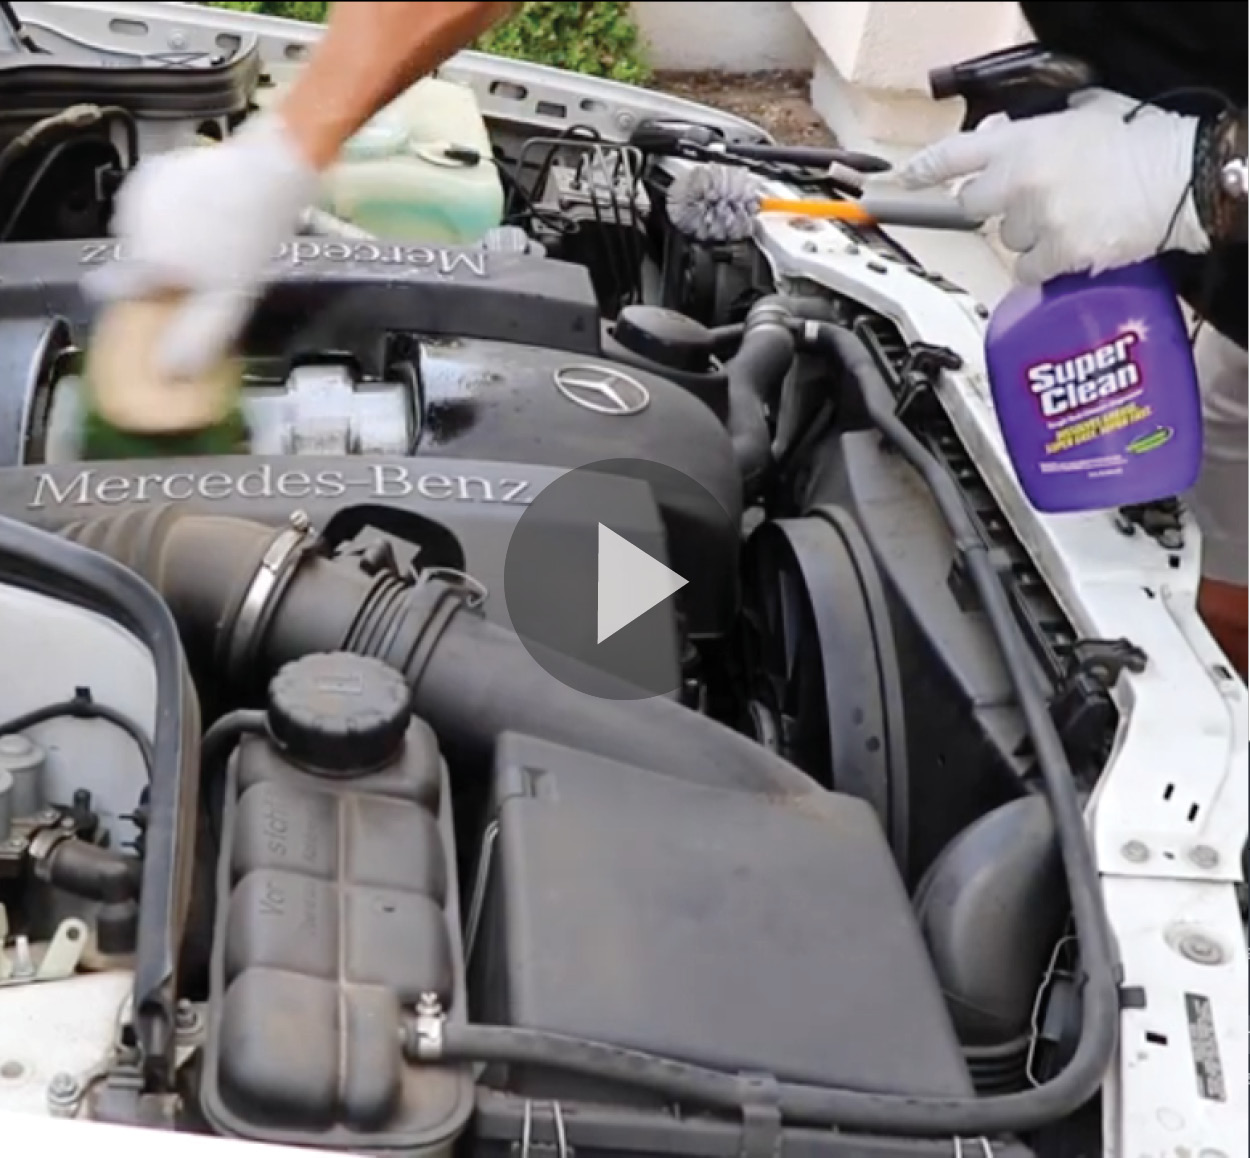 Car engine being degreased with Super Clean